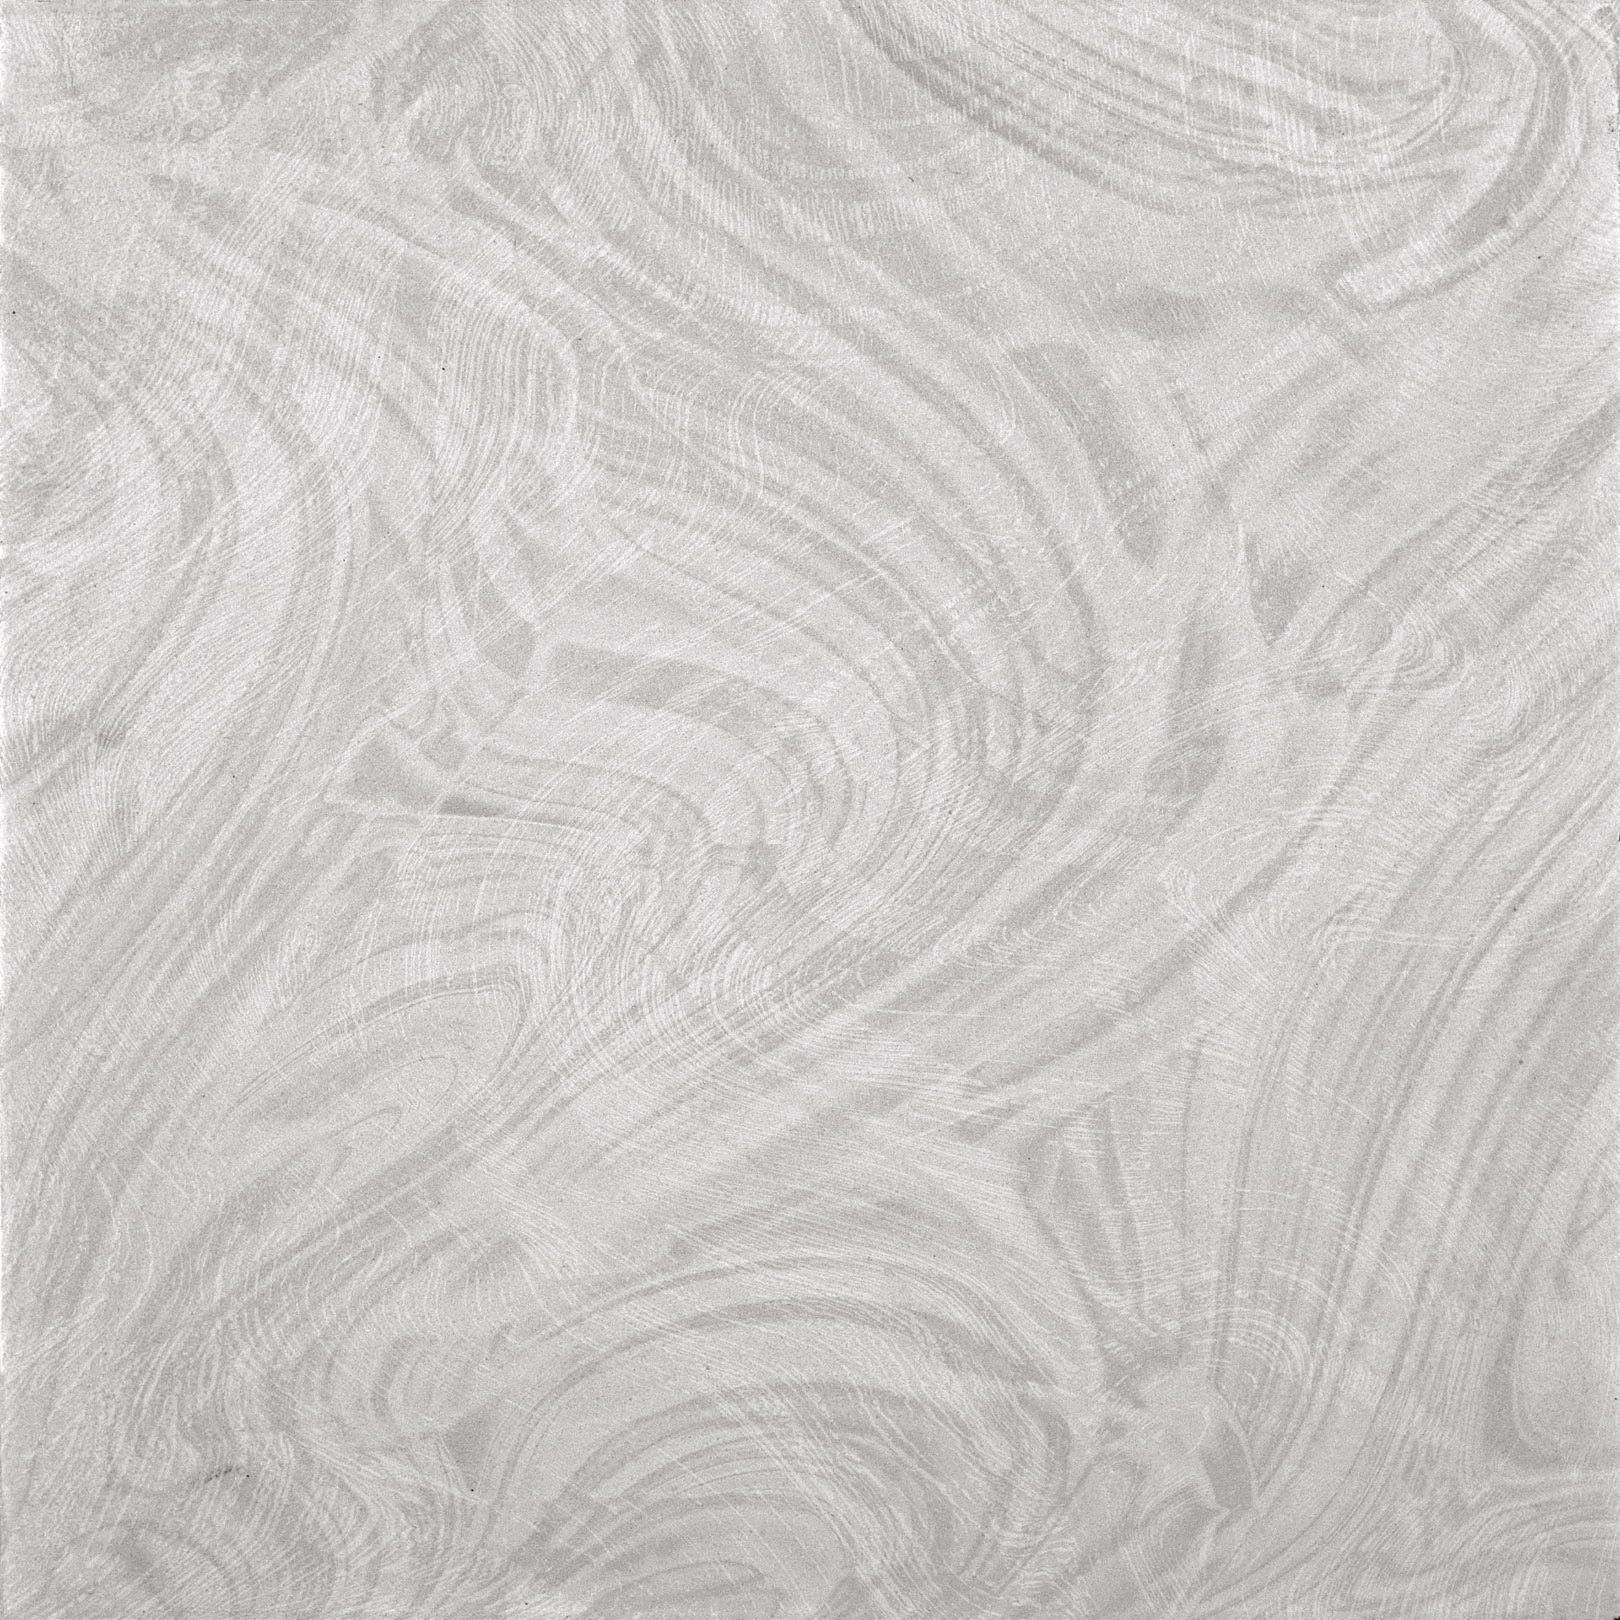 Koan Waves (R9) porcelain tile from our Sensazione Tile Collection